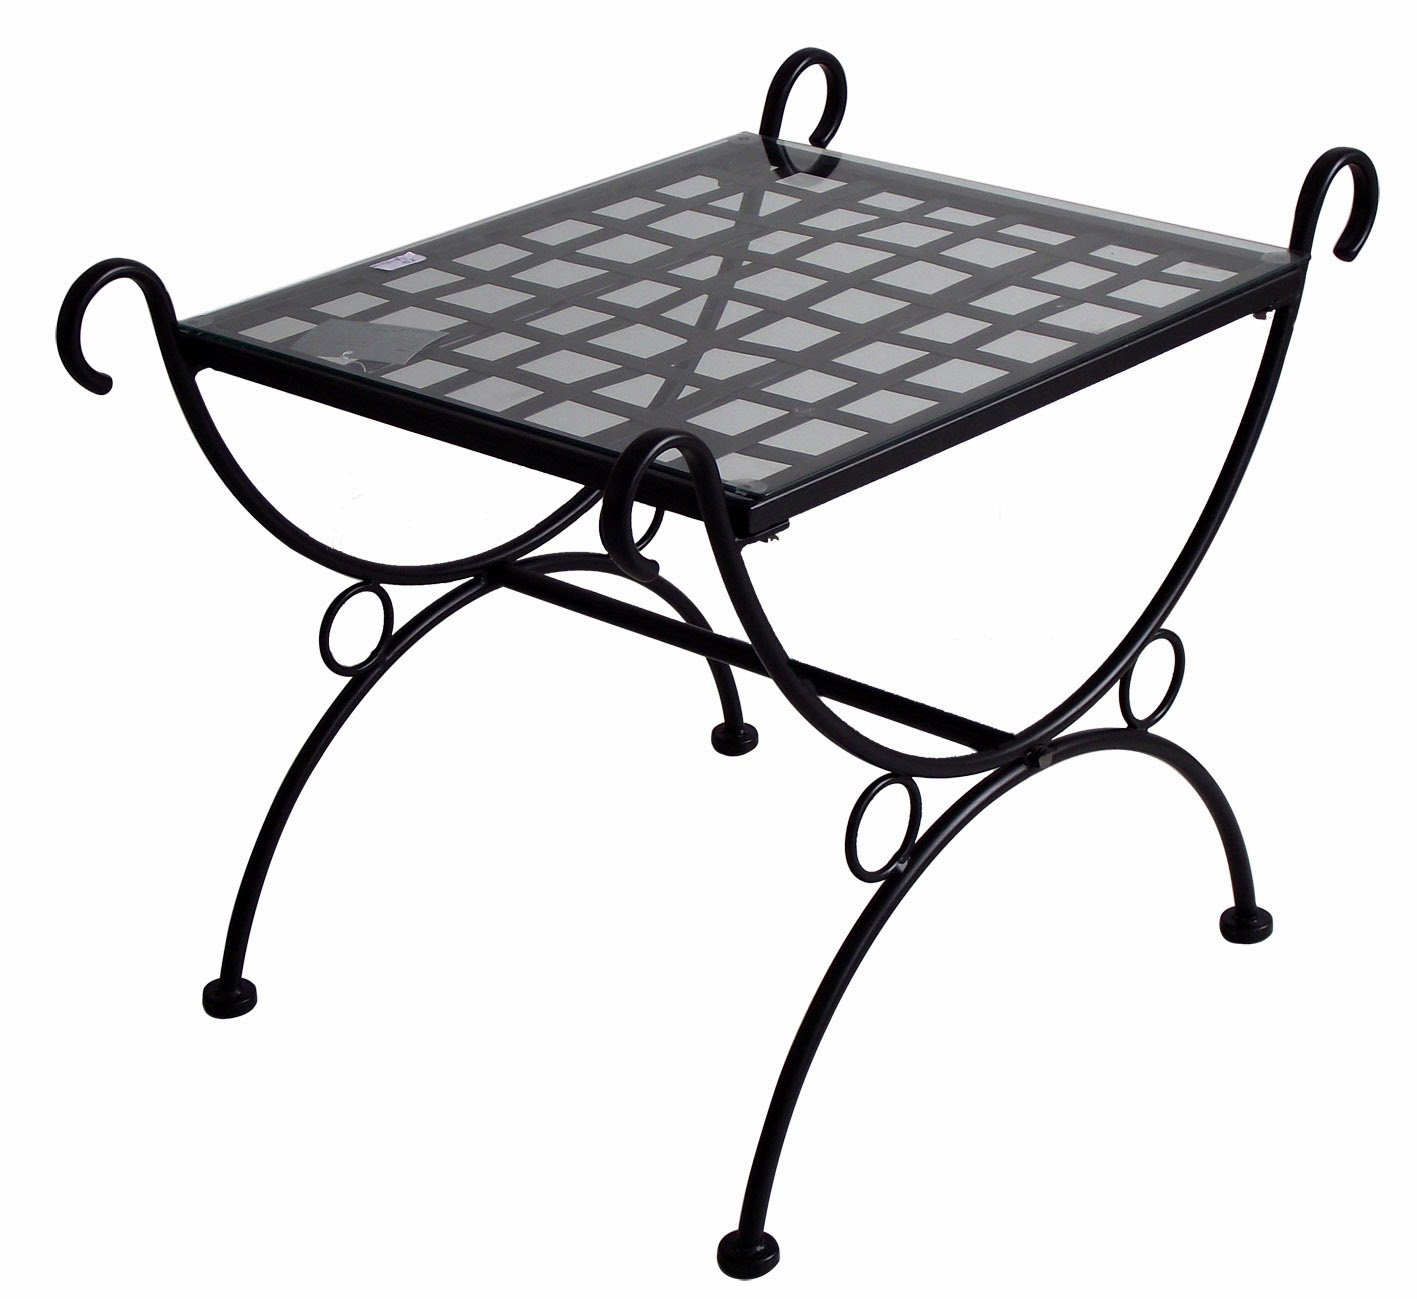 outdoor metal sofa table leather outlet phone number star decor ツ